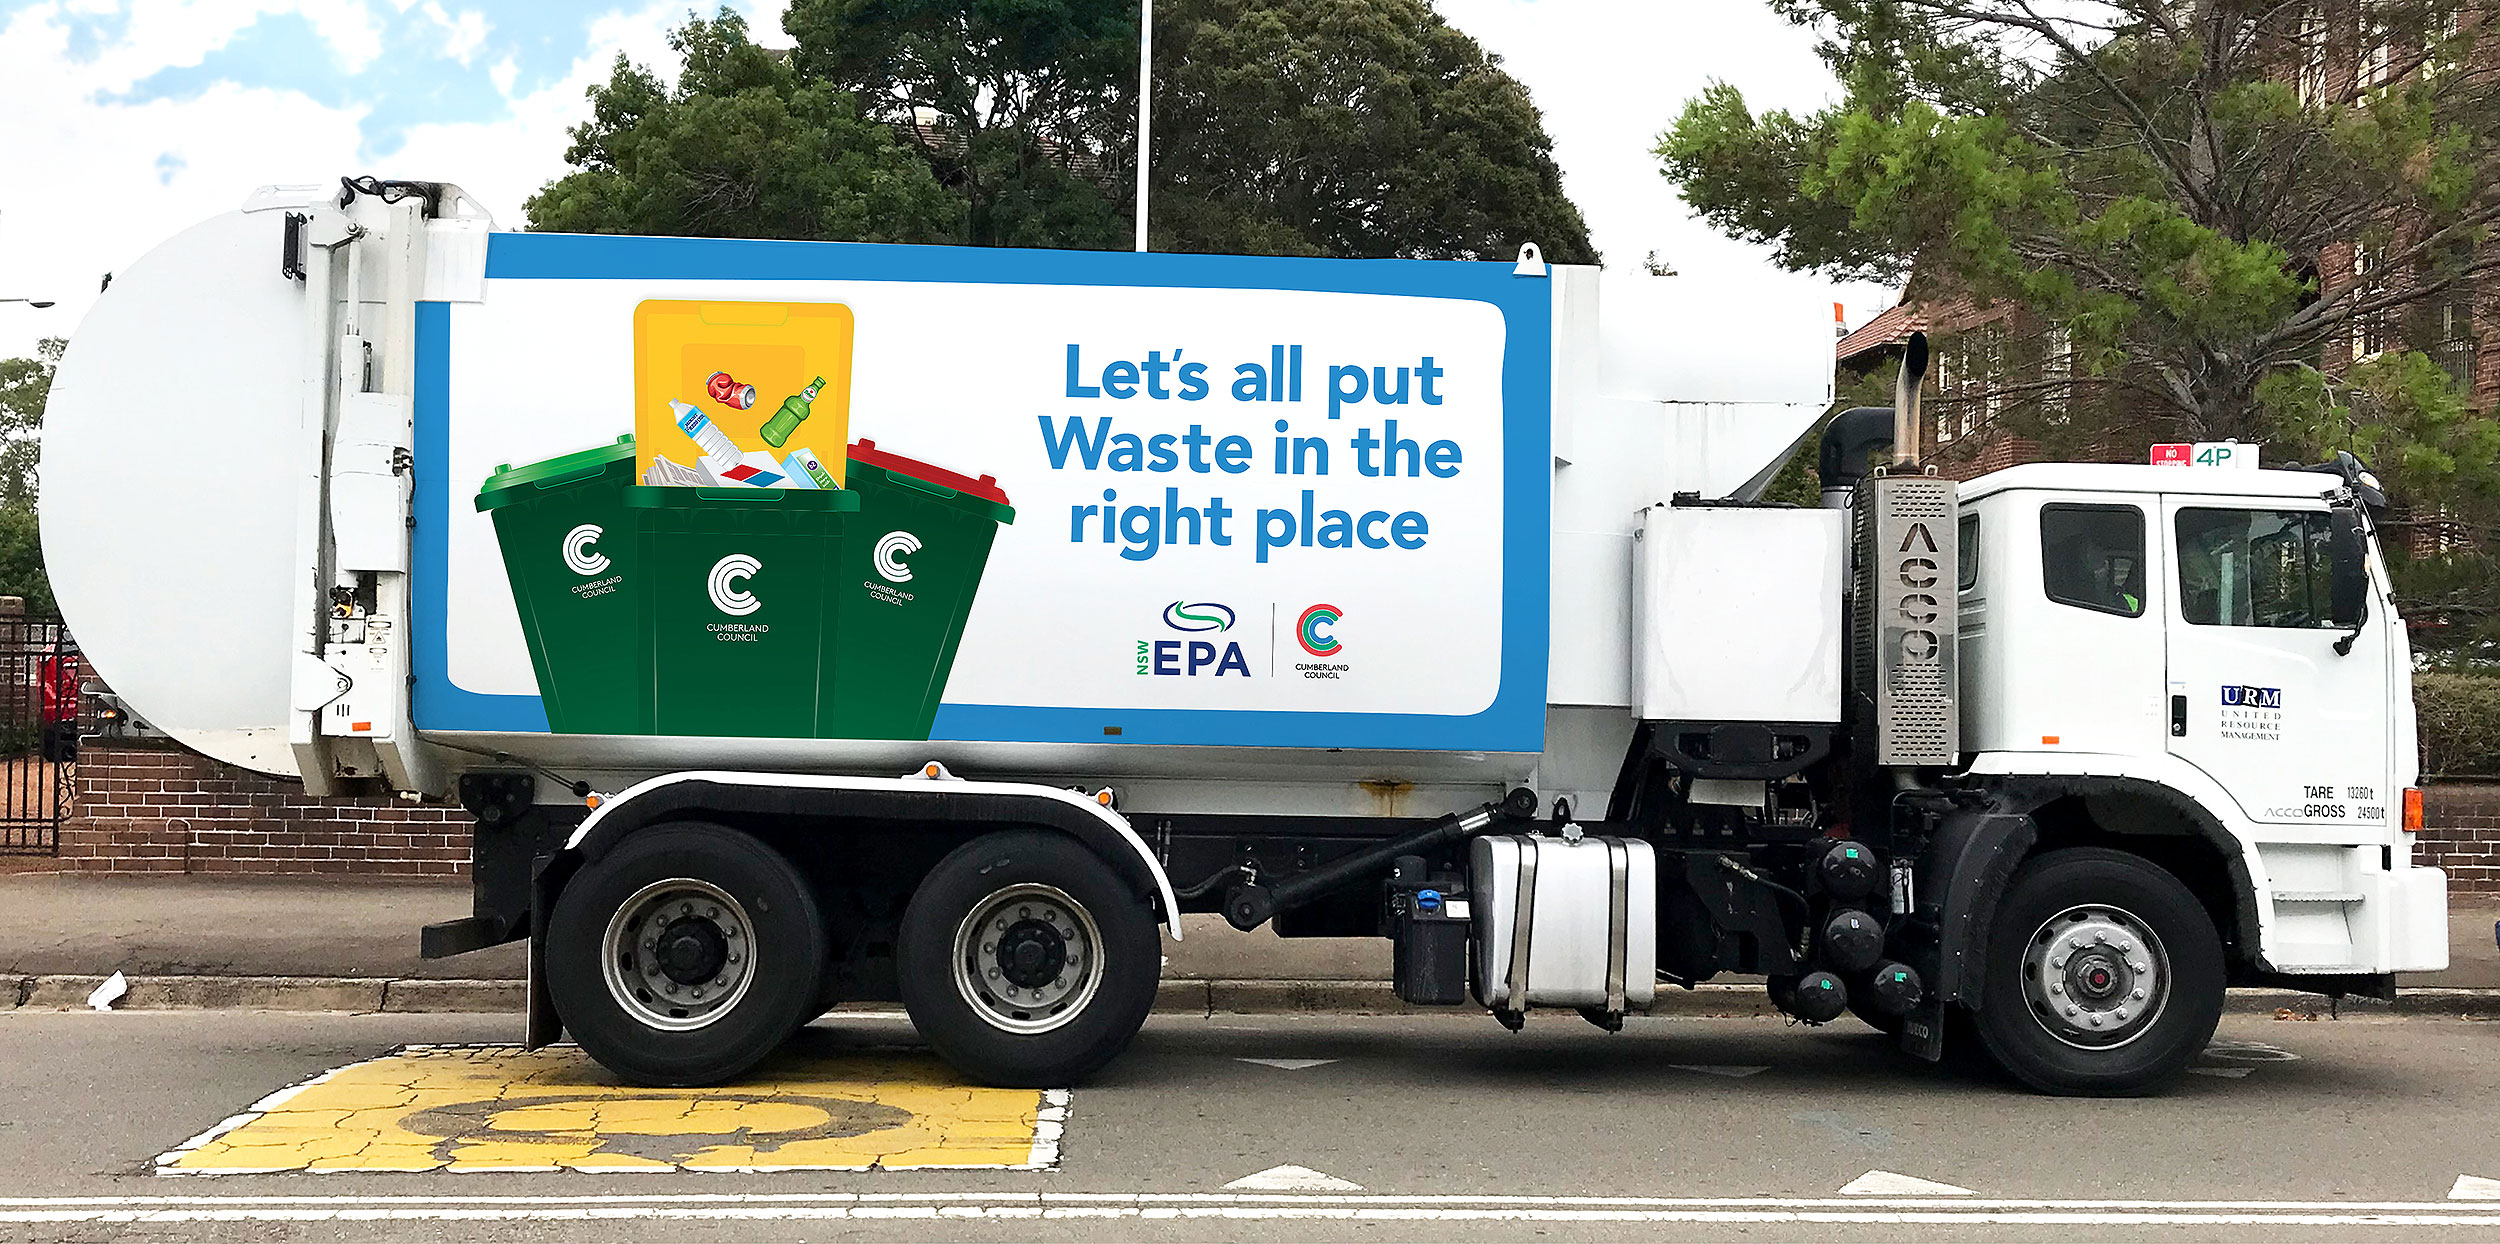 Handle-Branding-Cumberland-Council-NSW-Government-Waste-Education-Resources-Design_09.jpg